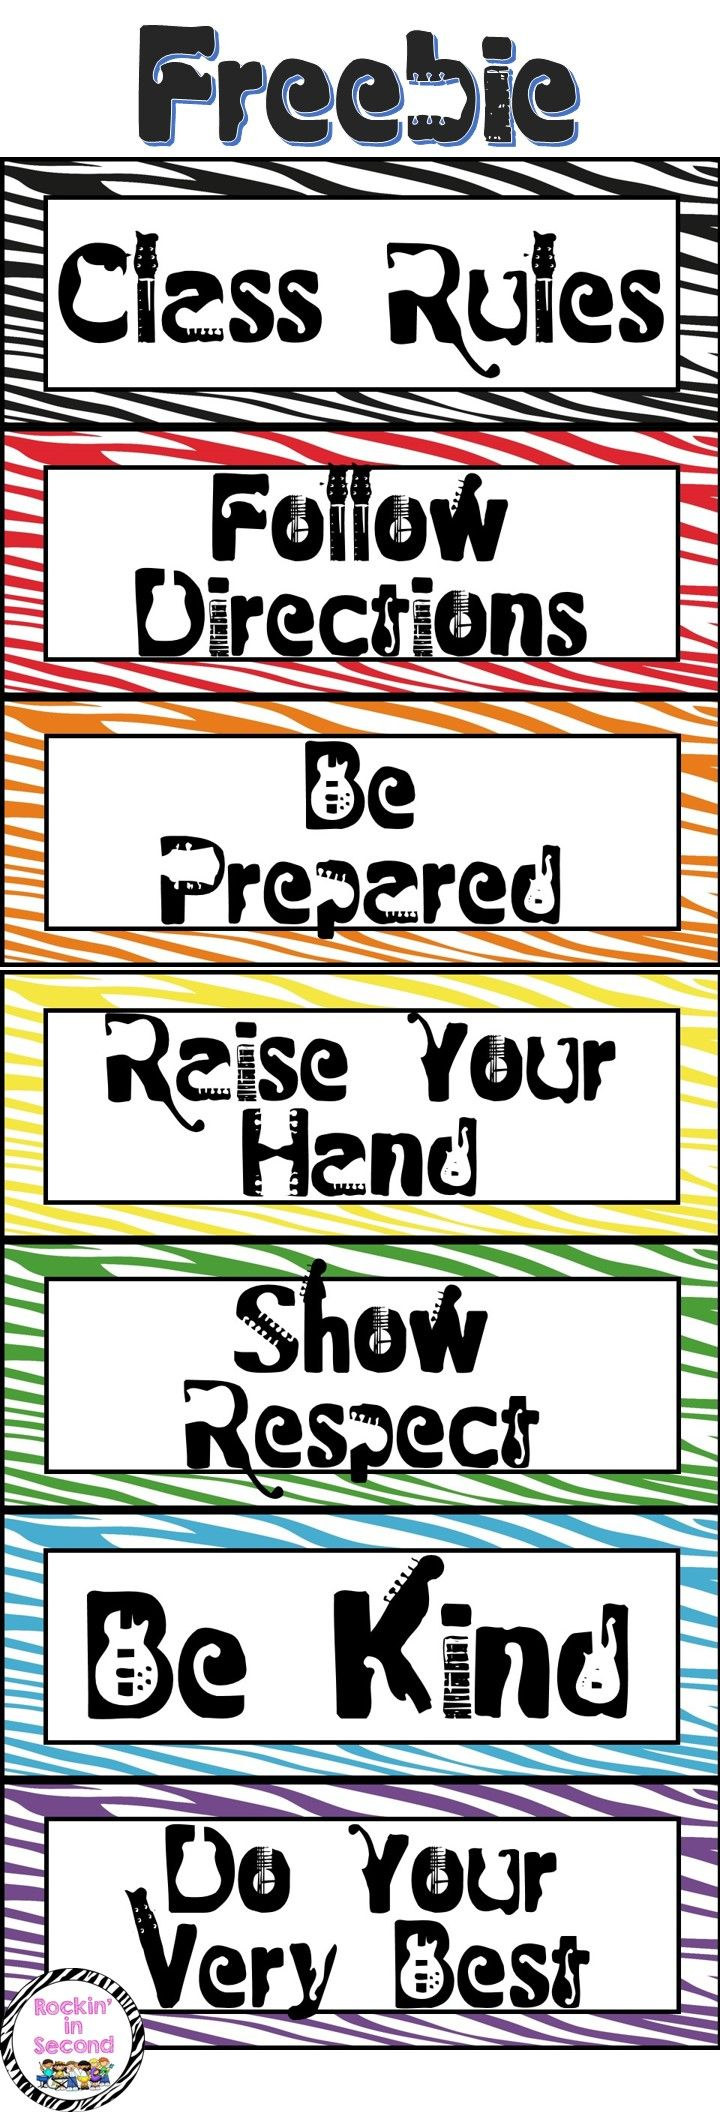 Rockstar Class Rules FREEBIE  Add this to your rockstar classroom. You can make a rule list, place them on your bulletin board in any arrangement you want! Enjoy this FREEBIE and follow me on TPT for more fun, exciting products and FREEBIES.  TPT gives credit for future purchases when you leave feedback. Thanks =)